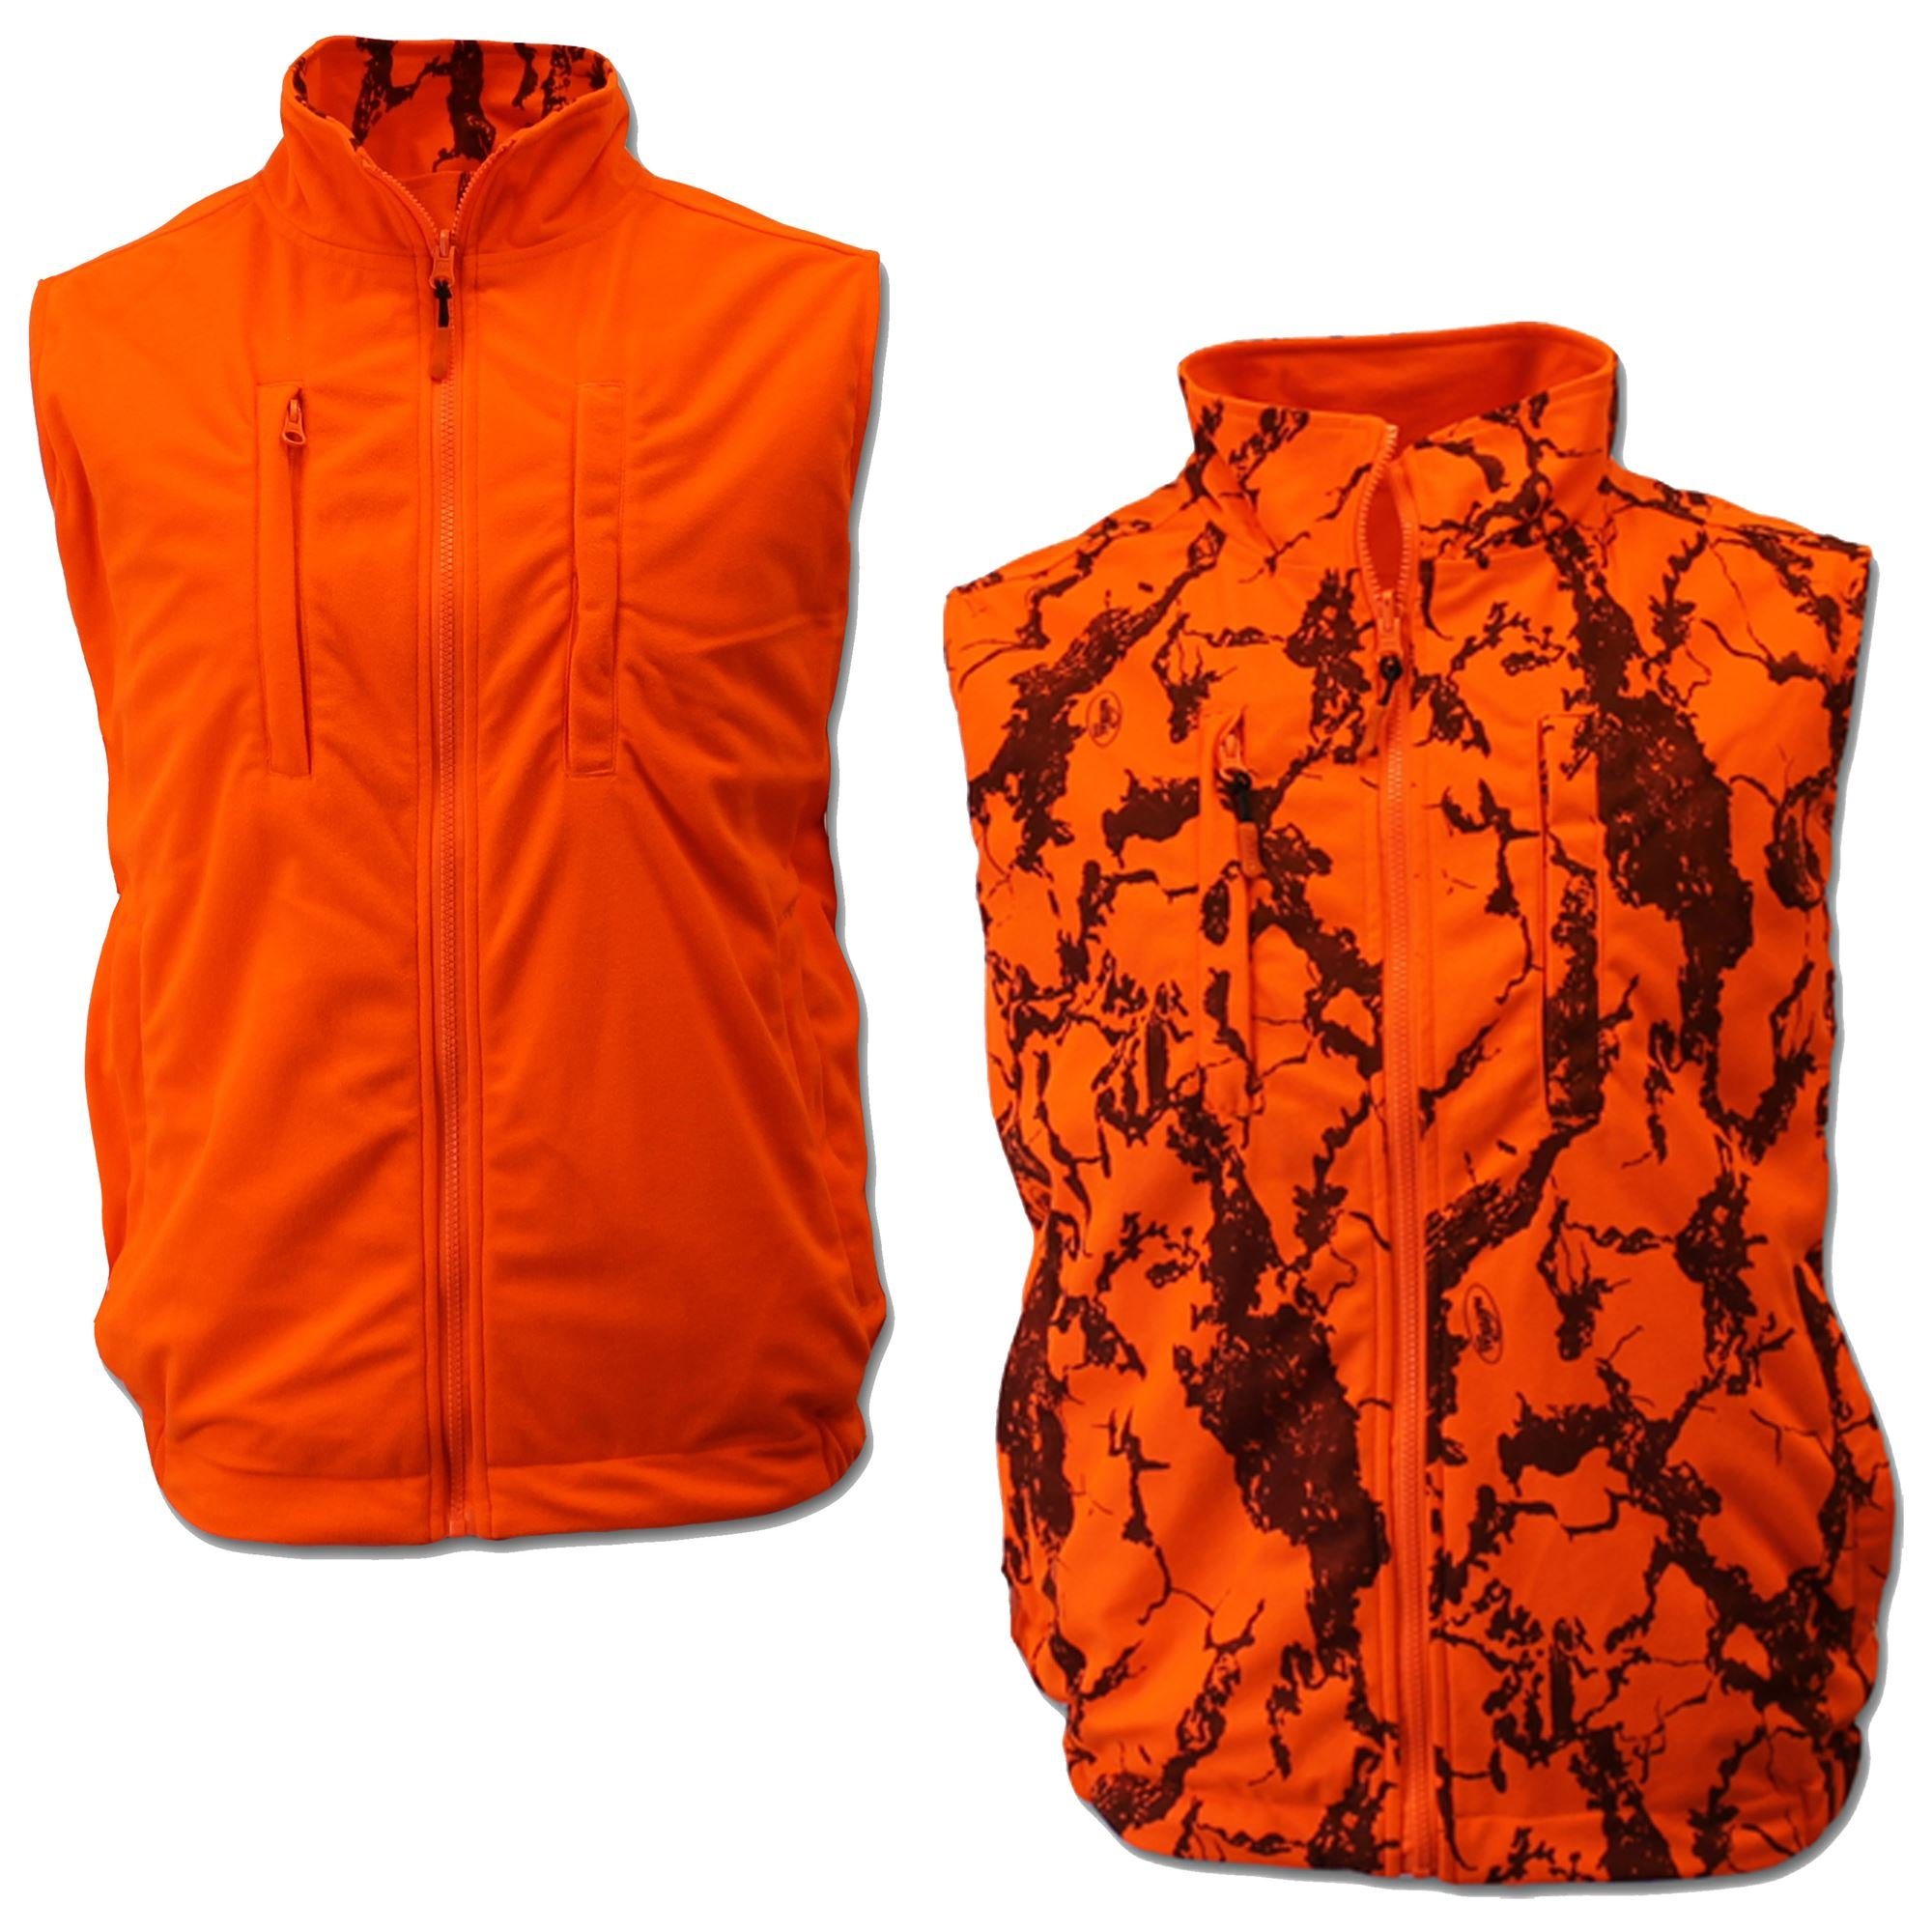 Natural Gear Reversible Orange Safety Vest with Zipper Closure, Orange Blaze Camo Hunting Vest for Women and Men, 100% Poly Shell Fleece and Liner (XX-Large) by Natural Gear